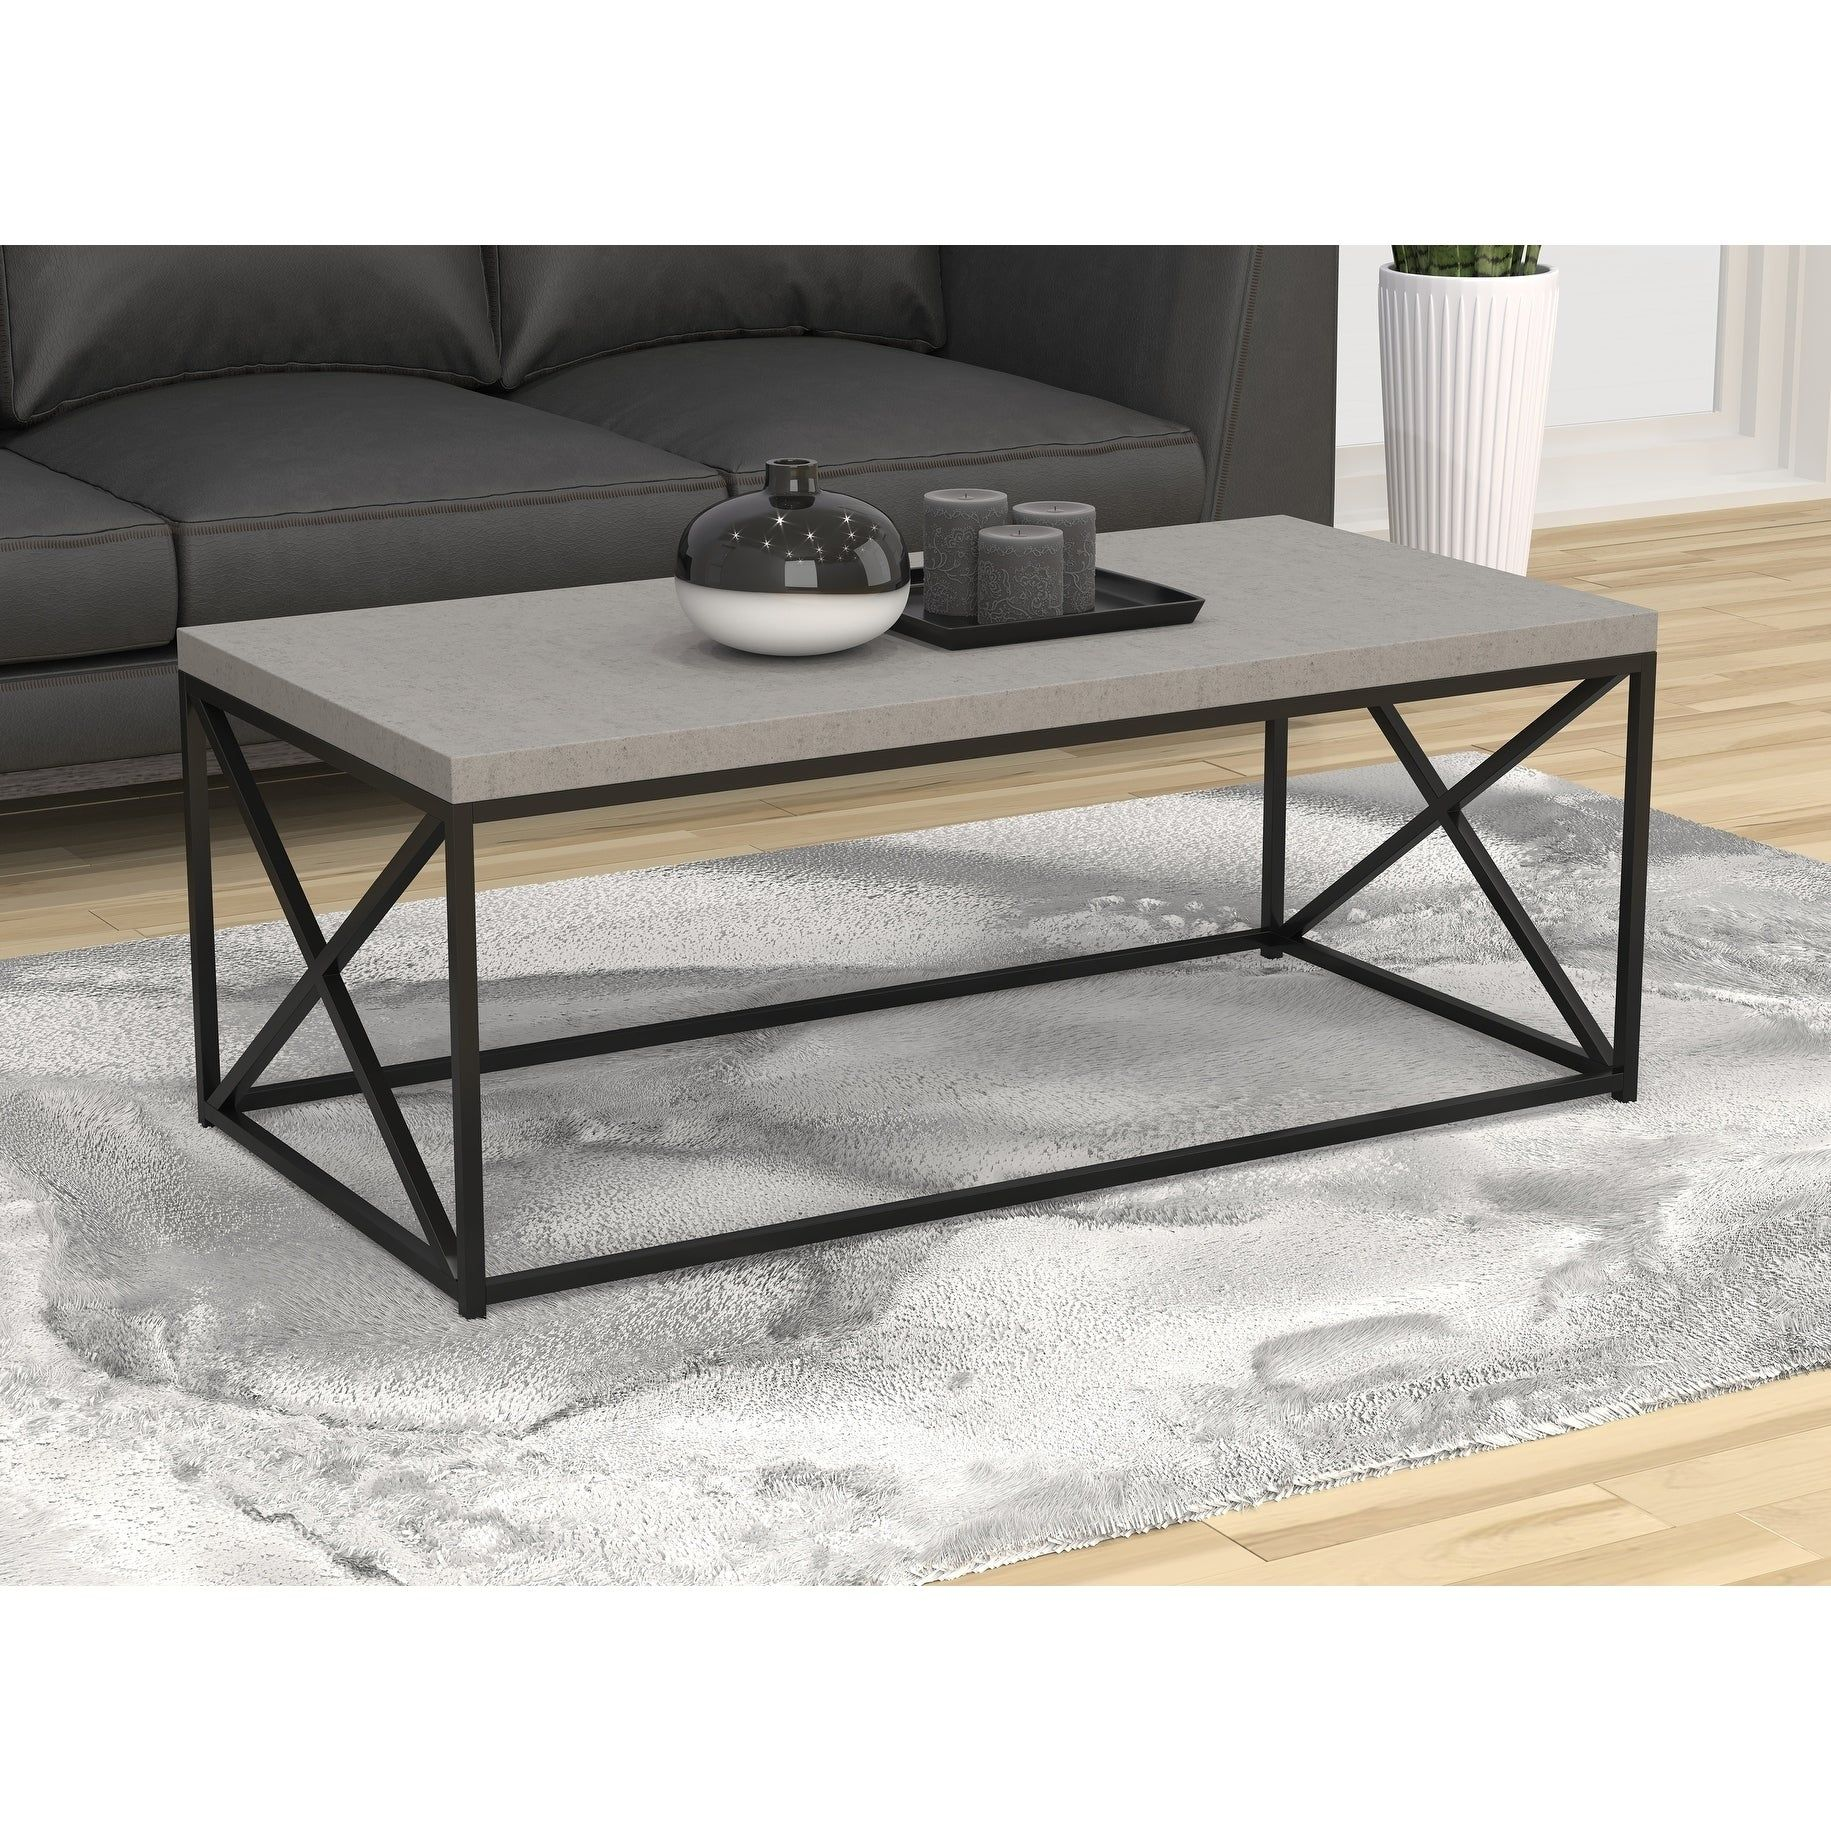 Online Shopping Bedding Furniture Electronics Jewelry Clothing More Center Table Living Room Furniture Furniture